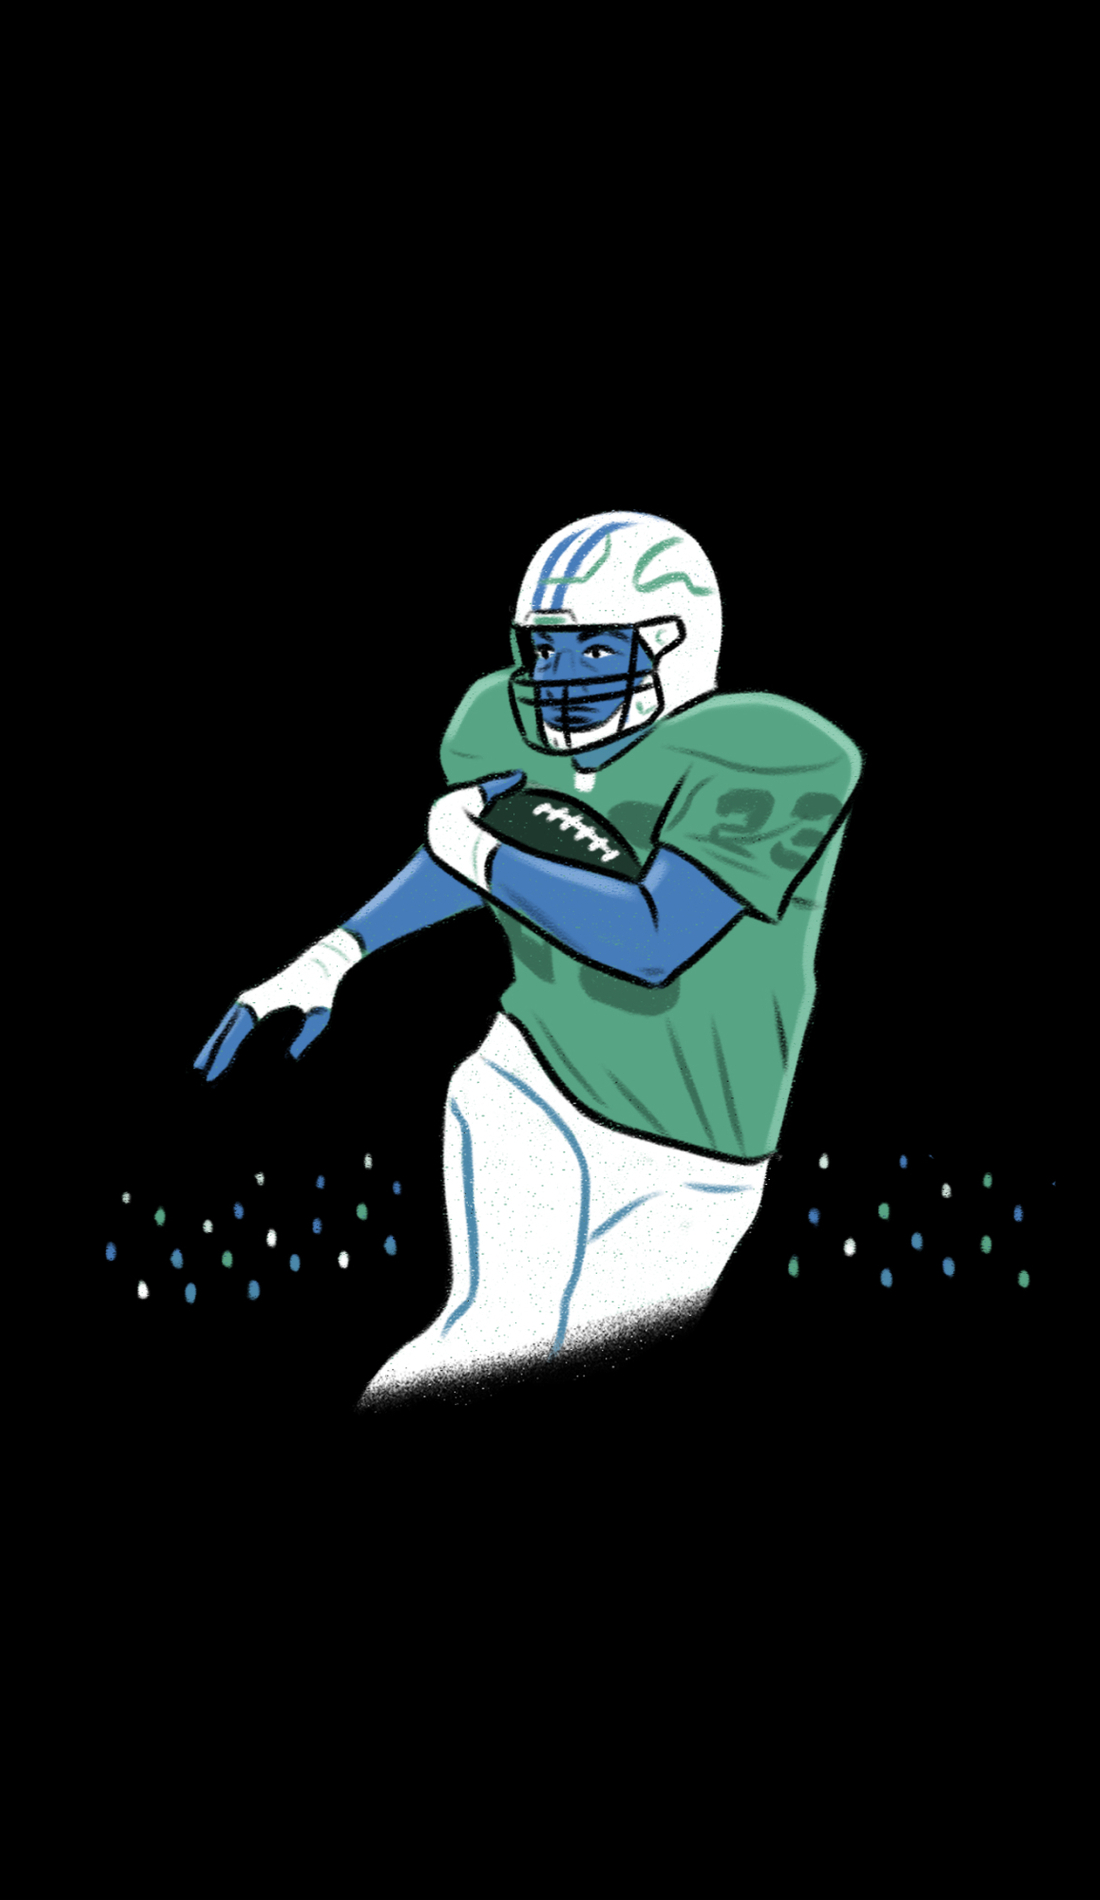 A William & Mary Tribe Football live event